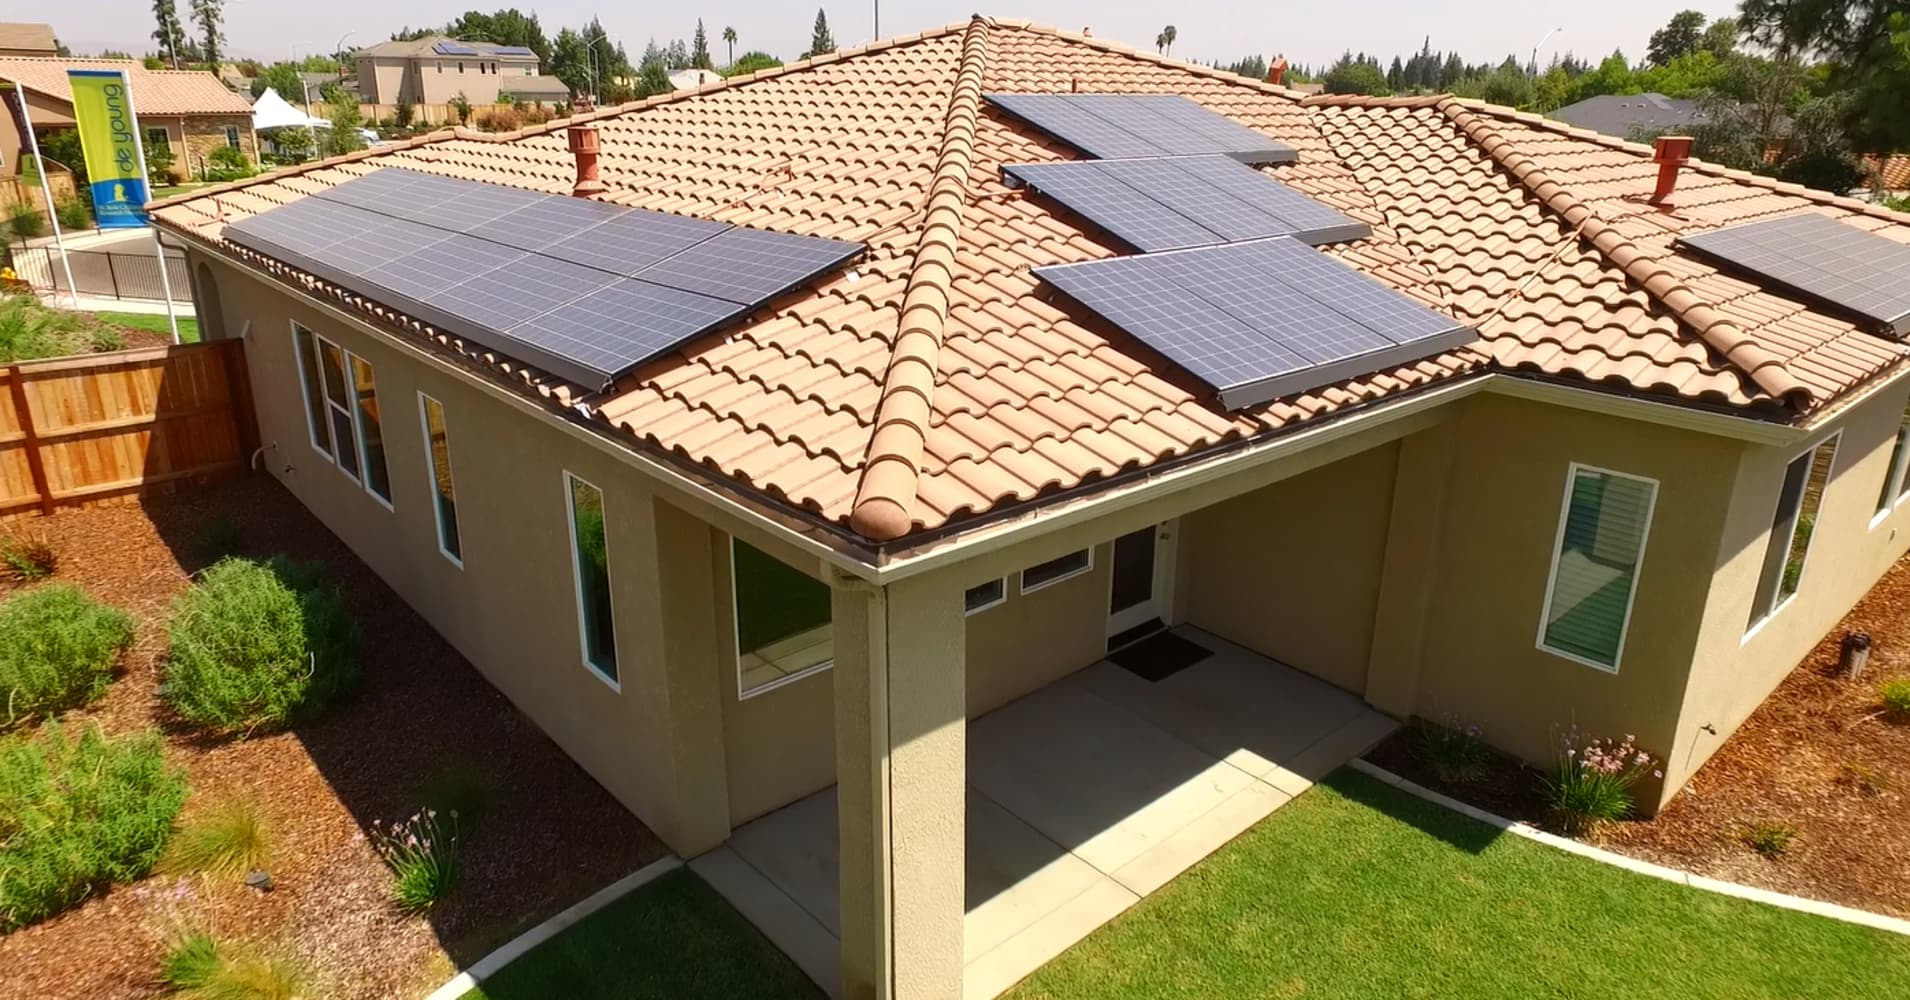 California Solar Panel Mandate Could Cost New Homeowners Big